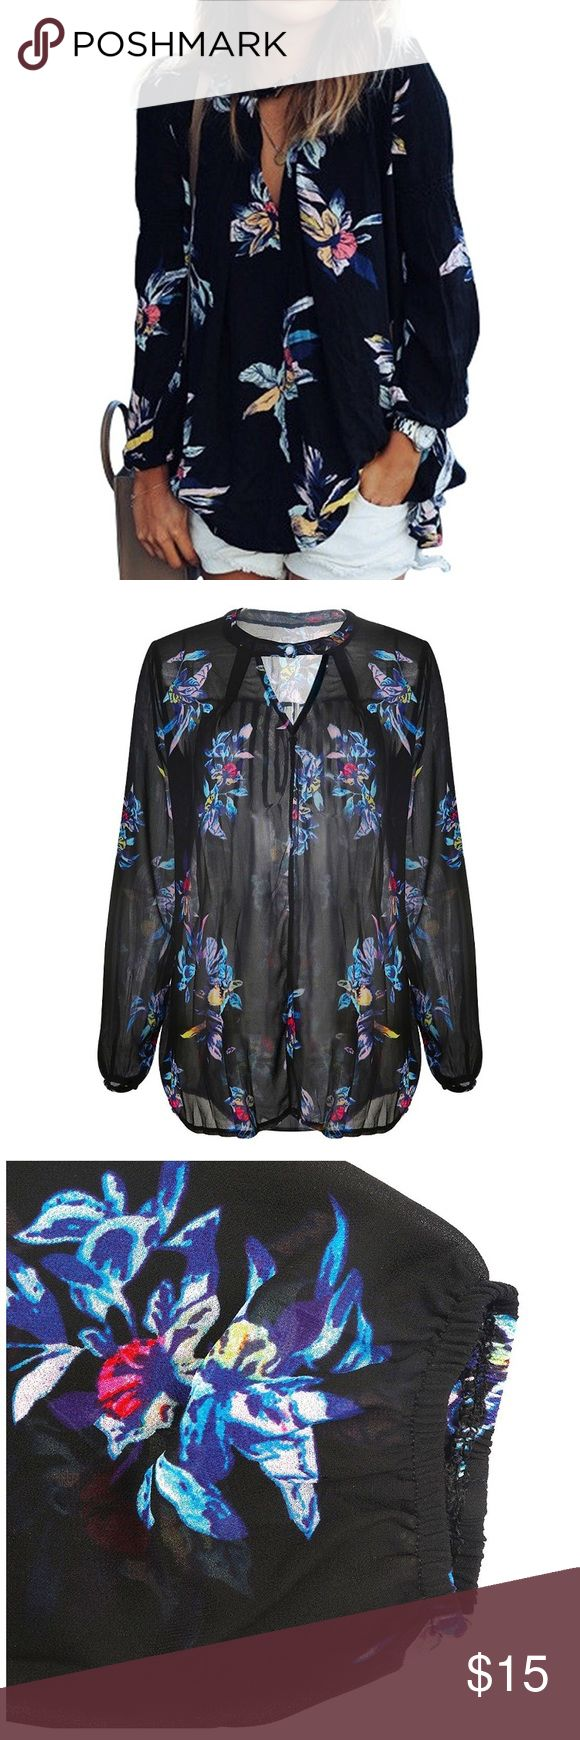 NWOT black floral chiffon blouse NWOT black floral chiffon blouse! Beautiful pattern. Purchased brand new and the size wasn't for me. Not able to return it without a large return processing fee. Open to reasonable offers. :) Tops Blouses